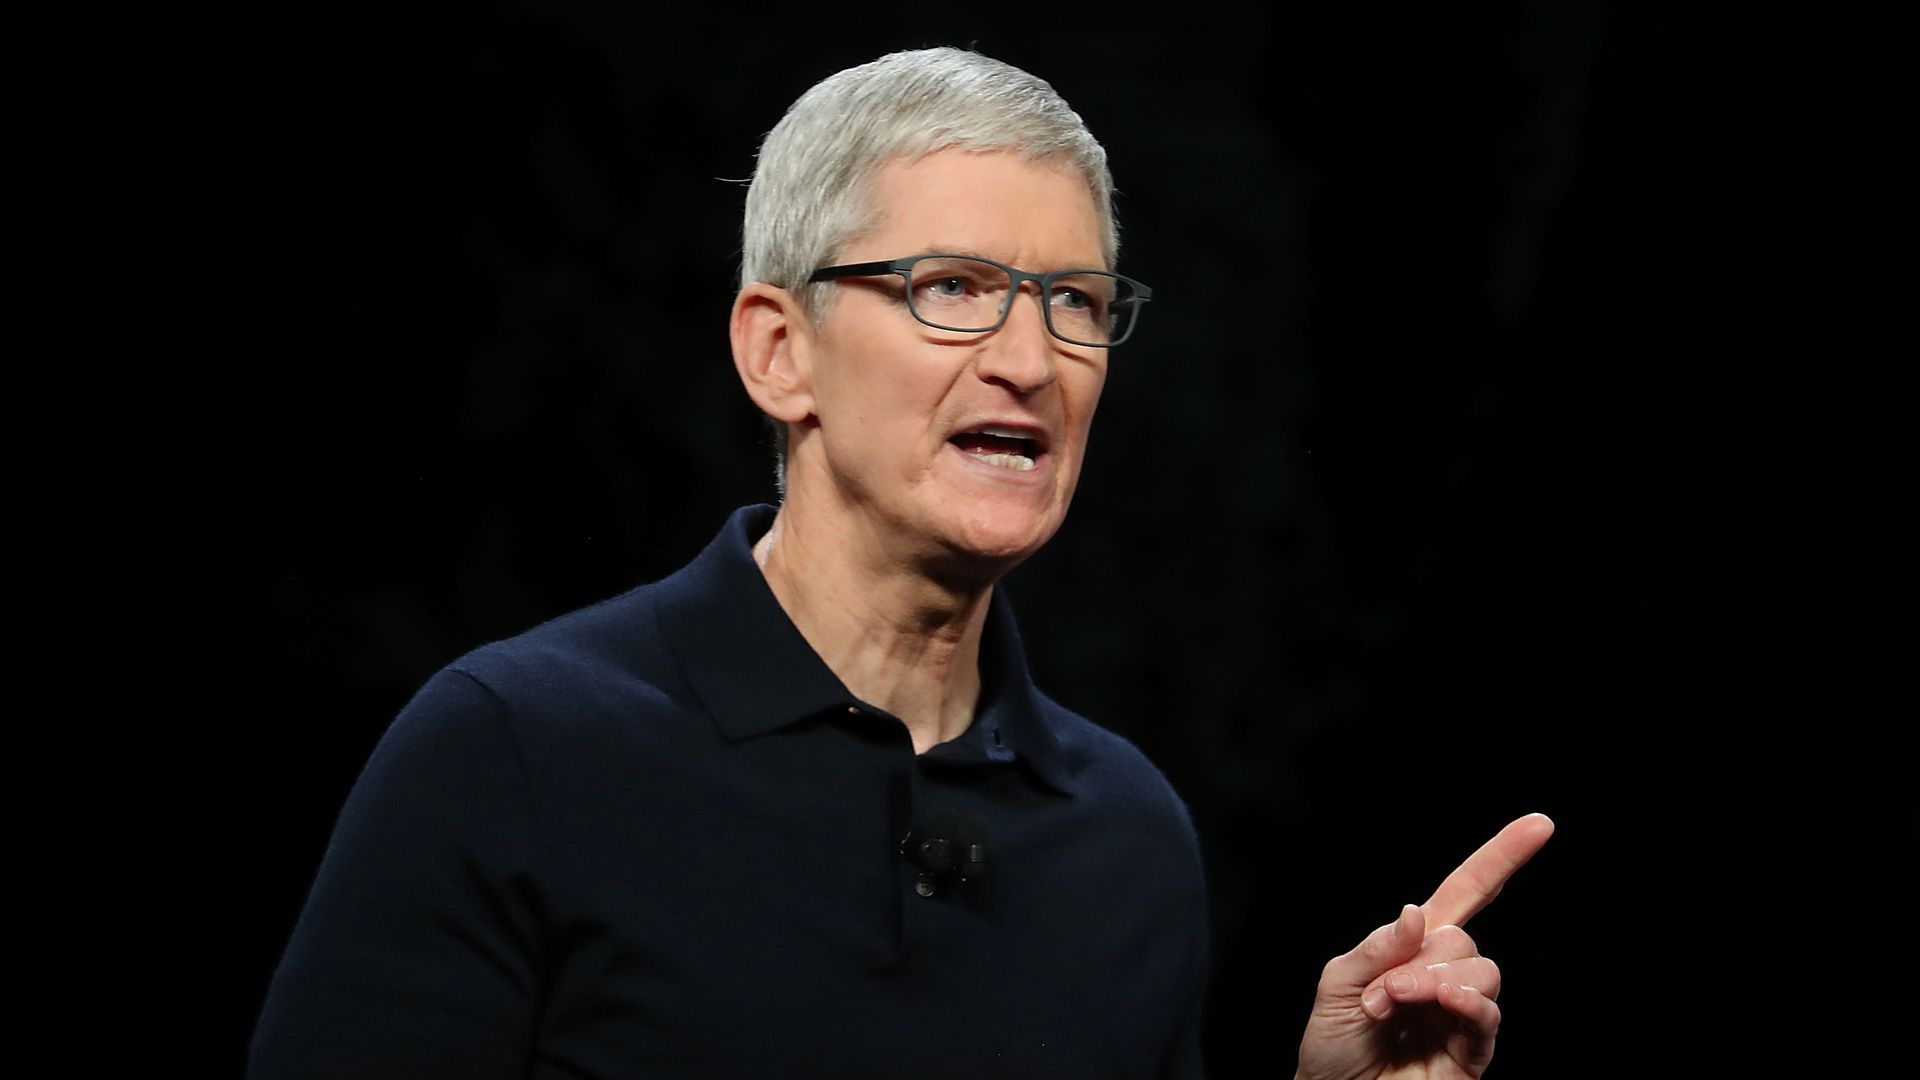 Apple joins effort to curb fake news